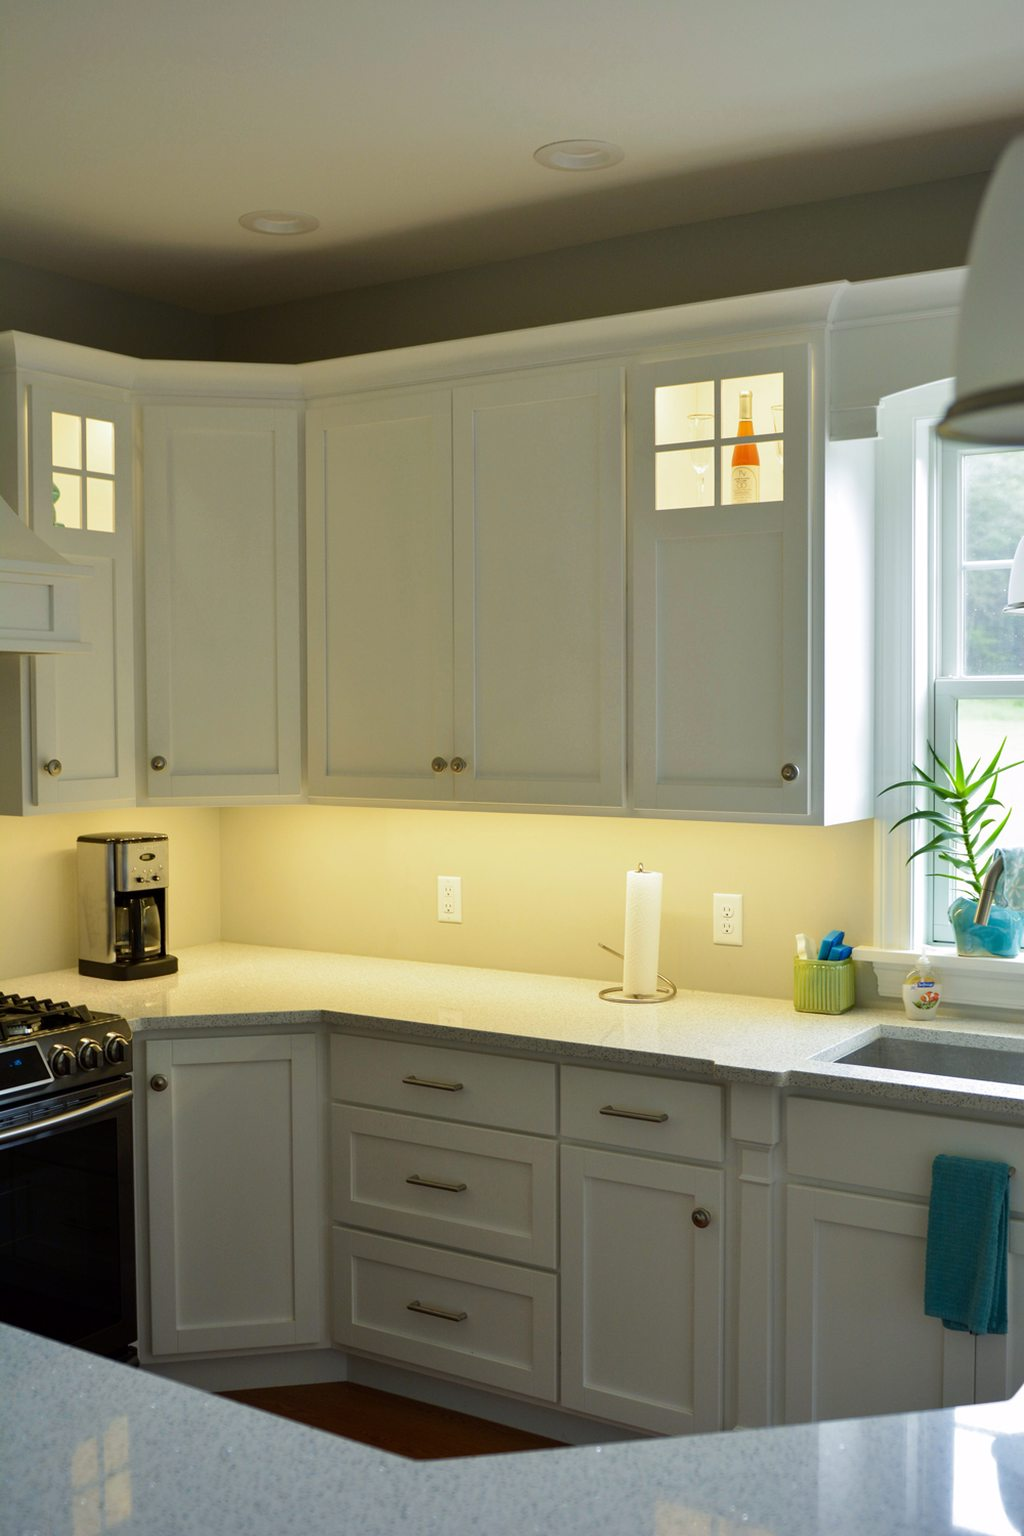 Remodeled Kitchen with Lighted Cabinetry and Glass Windowed Cabinets